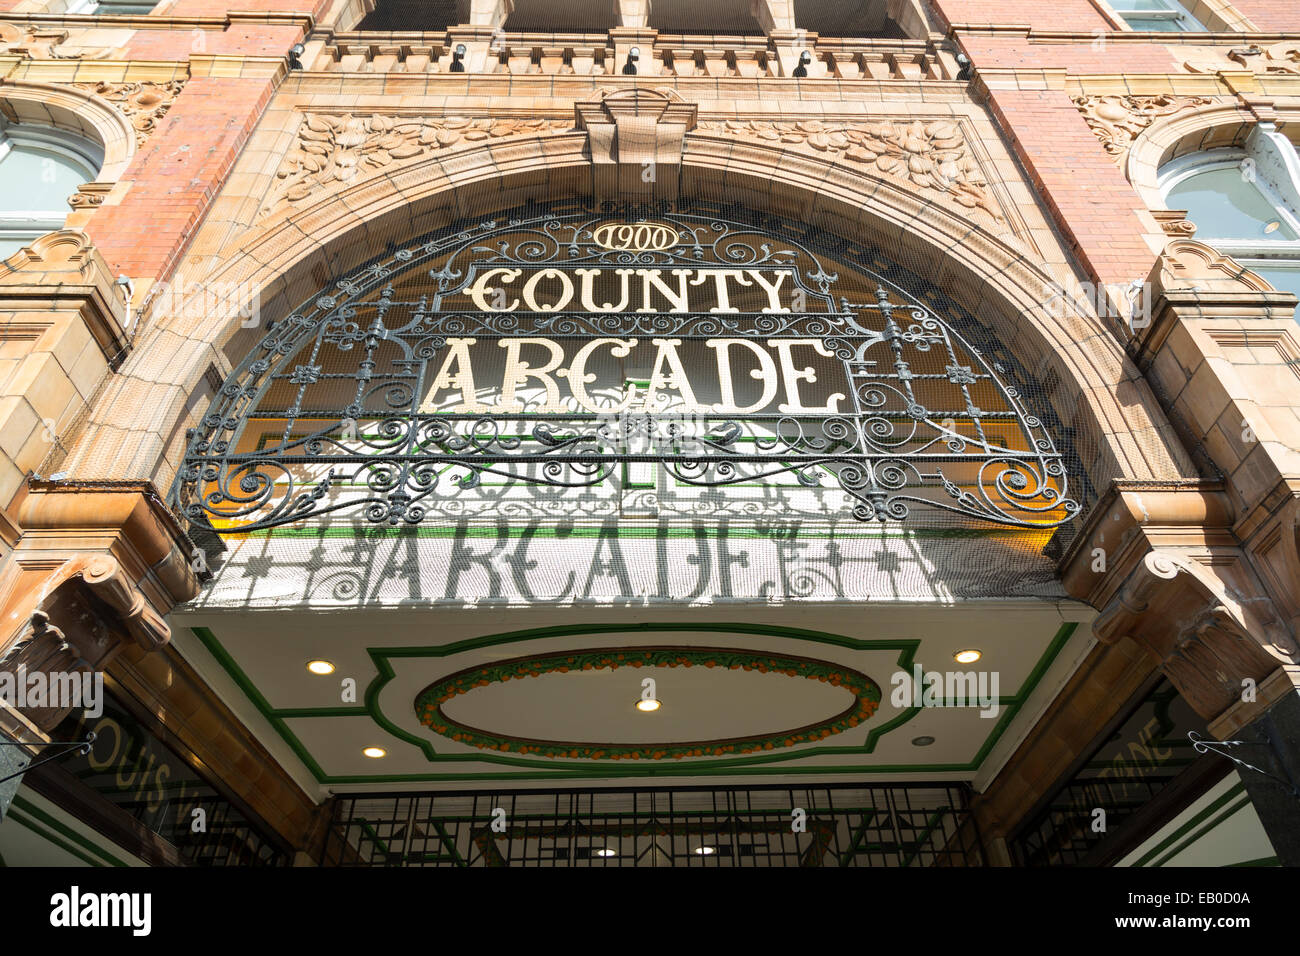 UK, Leeds, Briggate Street, County Arcade sign. - Stock Image